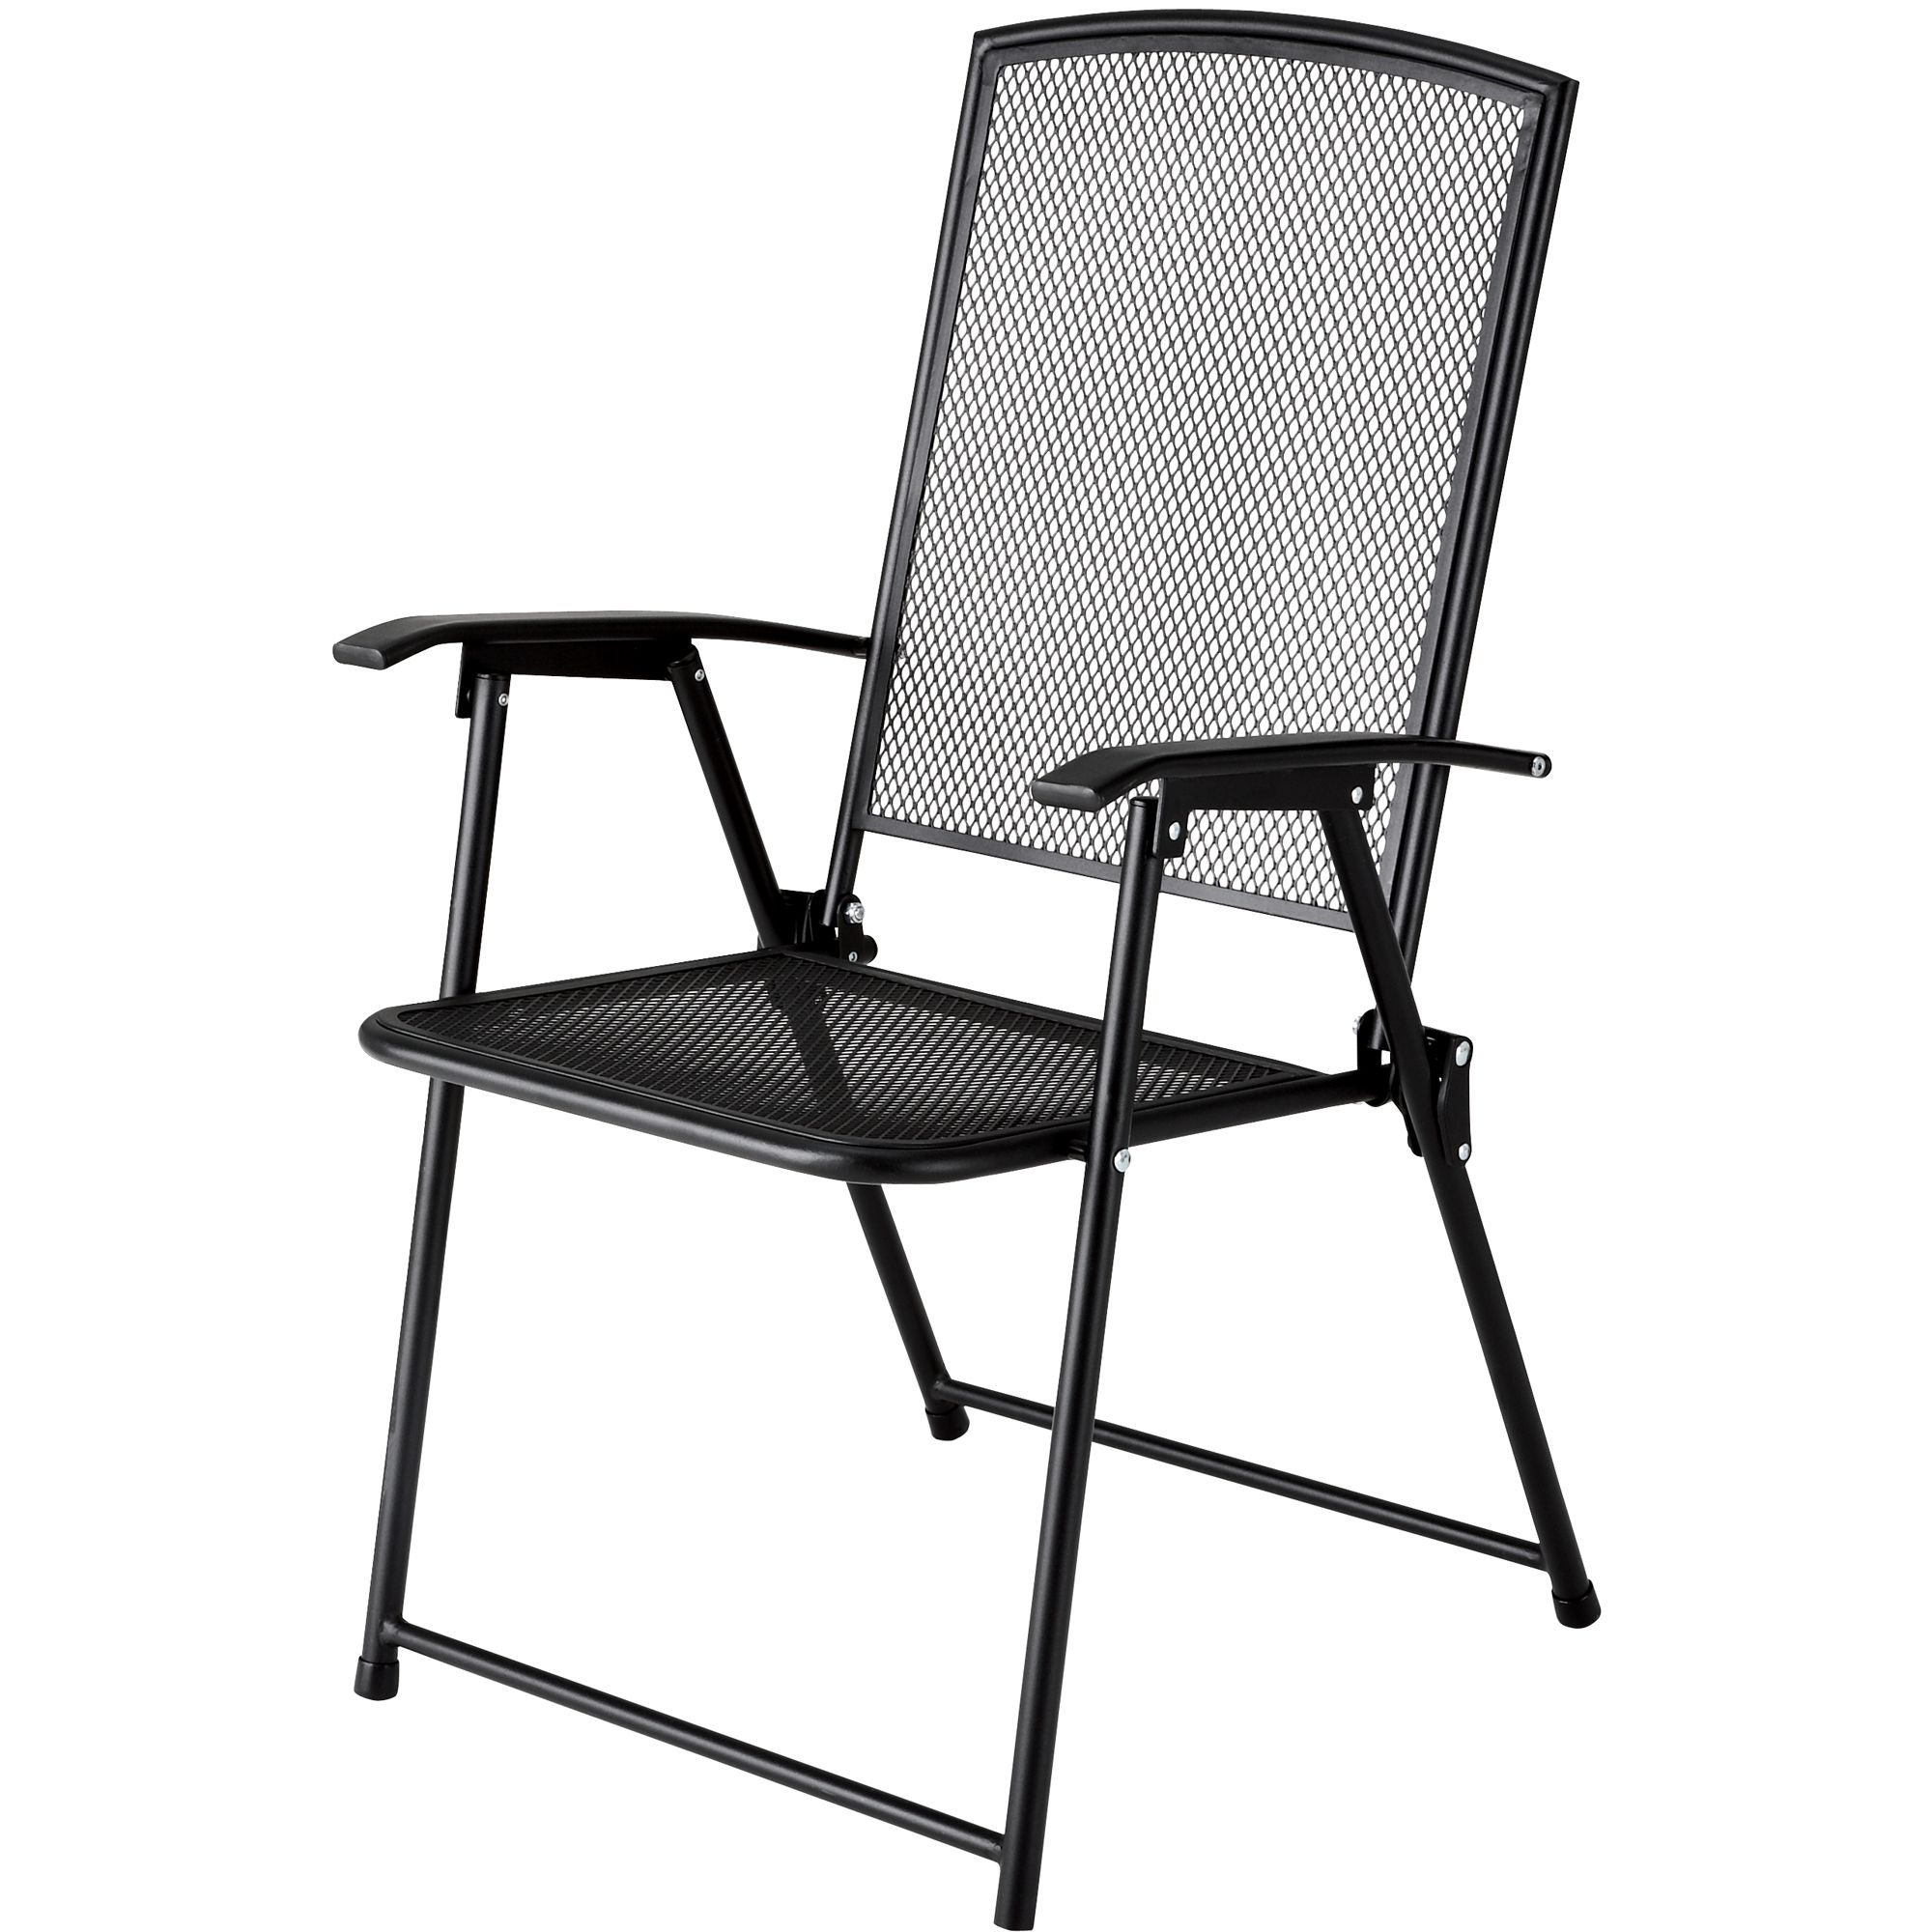 Jaclyn Smith Wrought Iron Mesh Metal Chair Limited